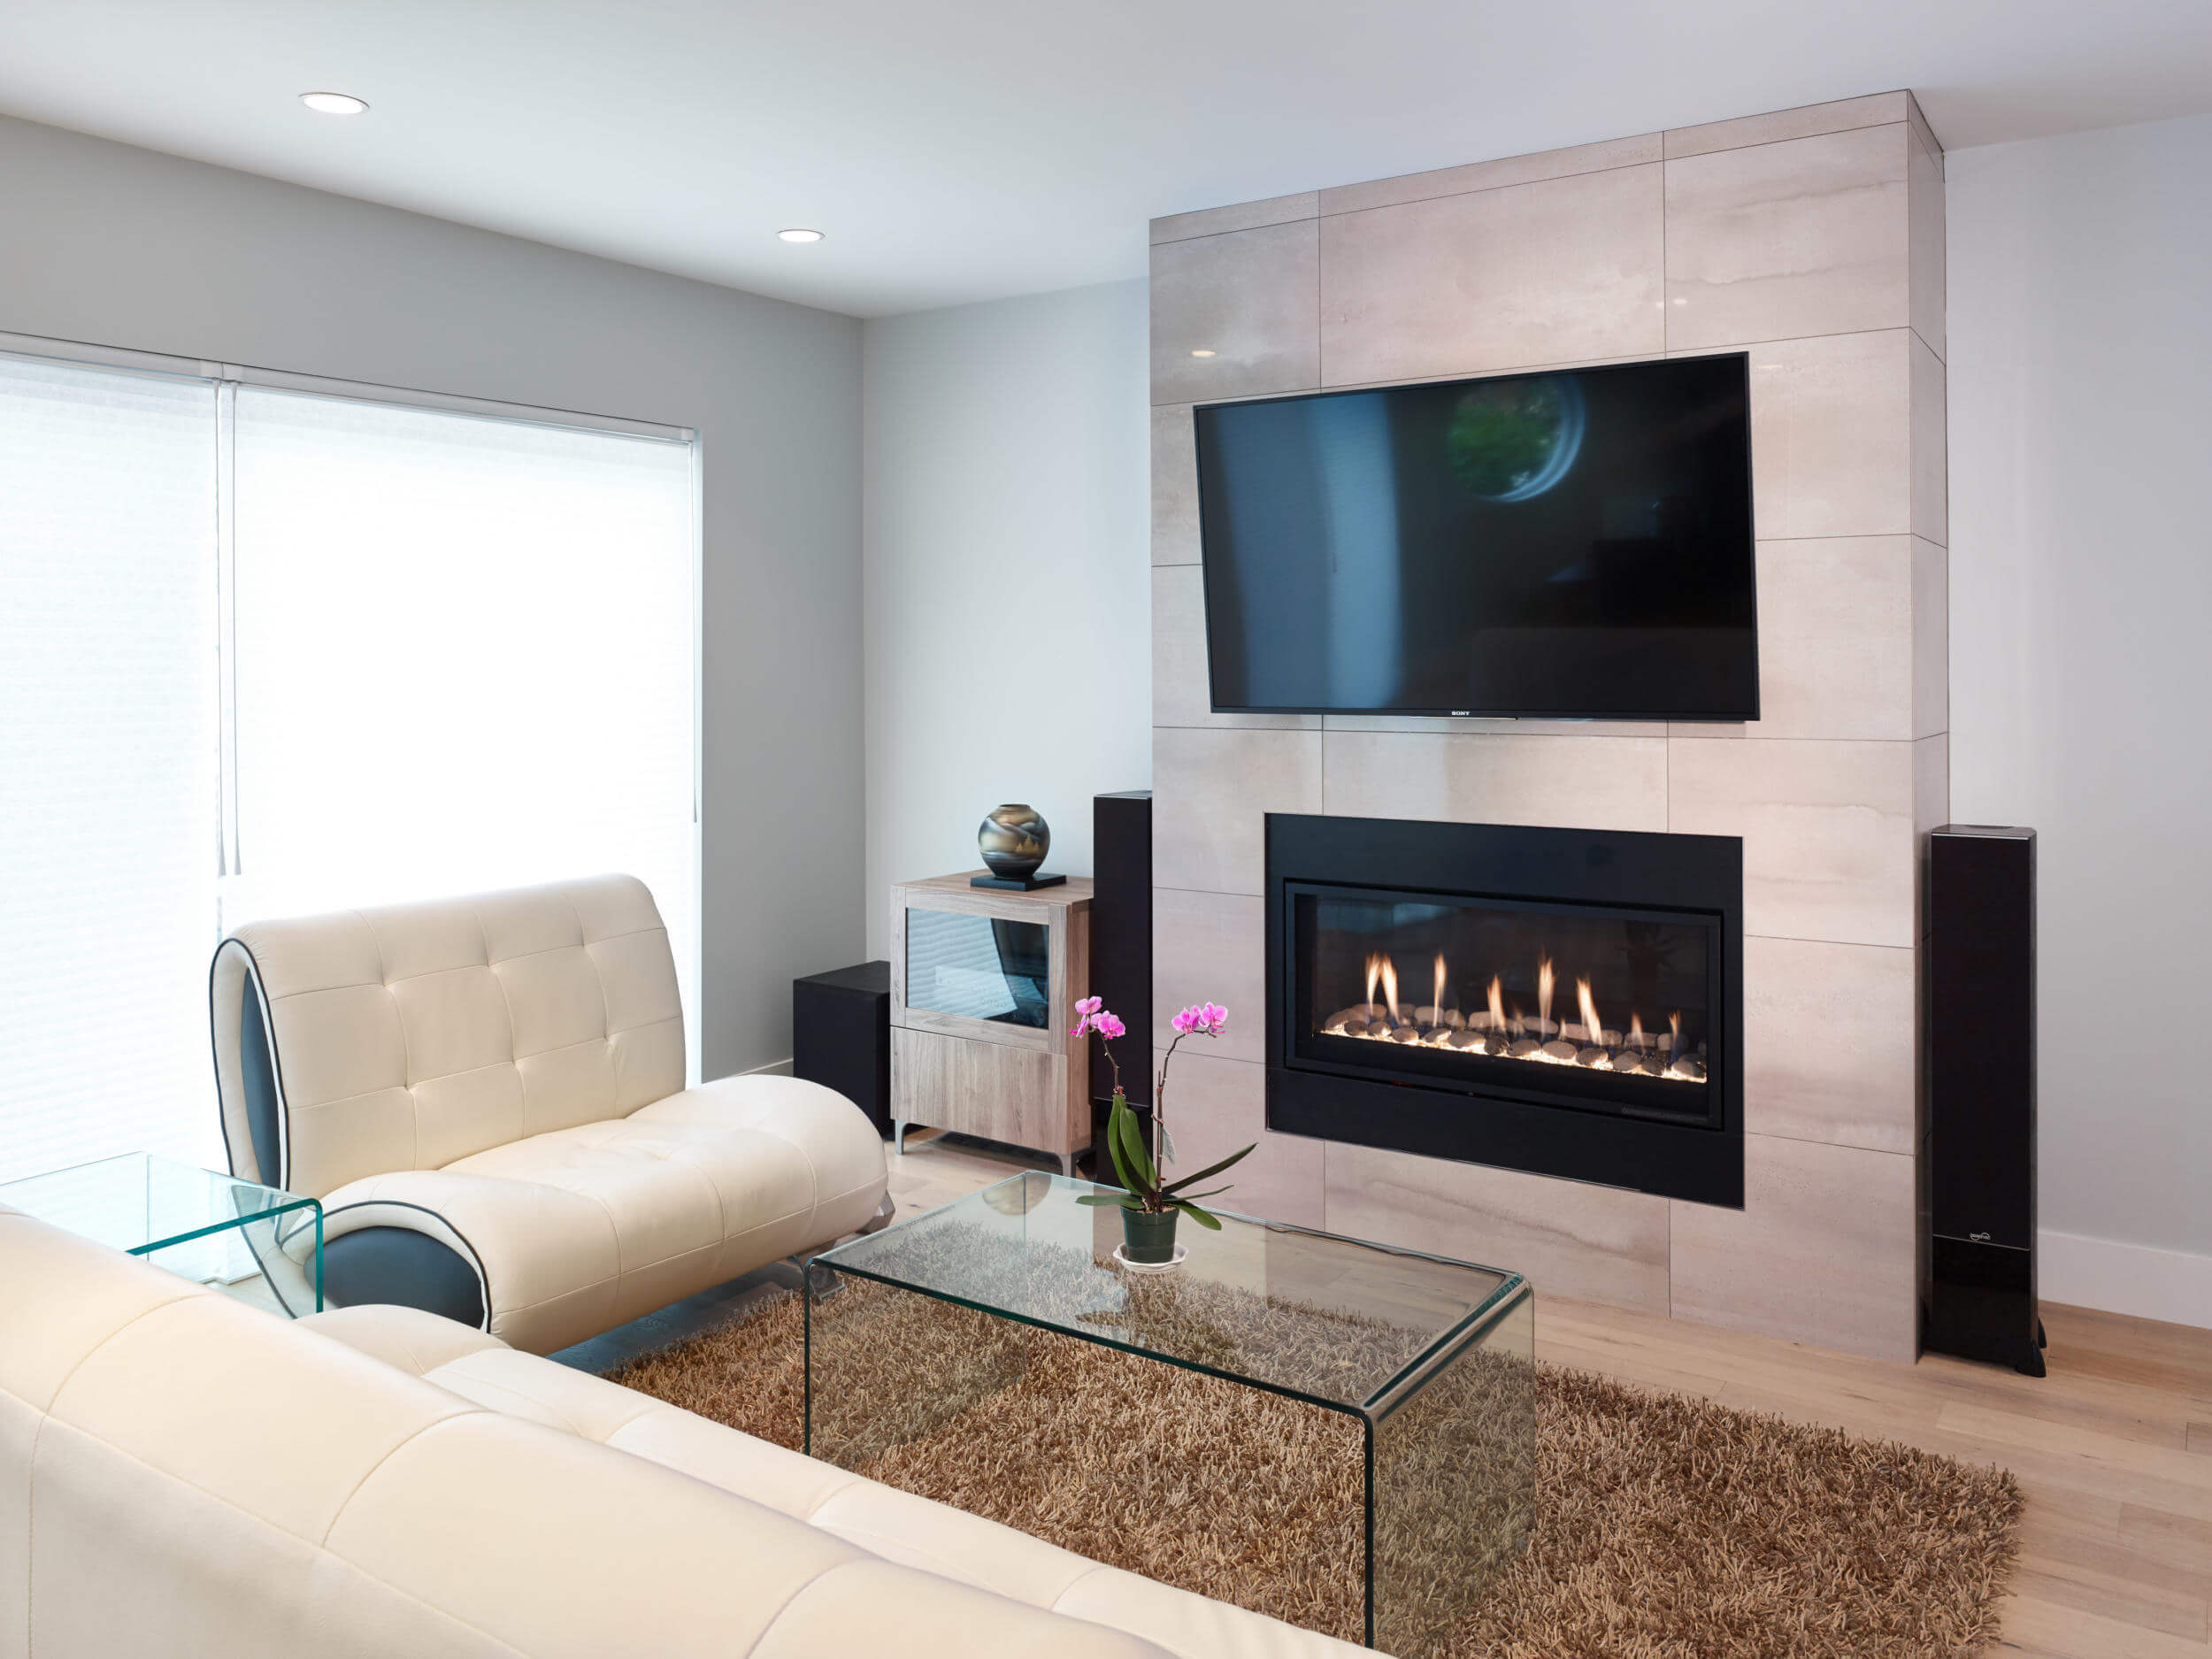 renovating and tips niche lane tag a mantel tract for fireplace archives home media shiplap designing light renovation